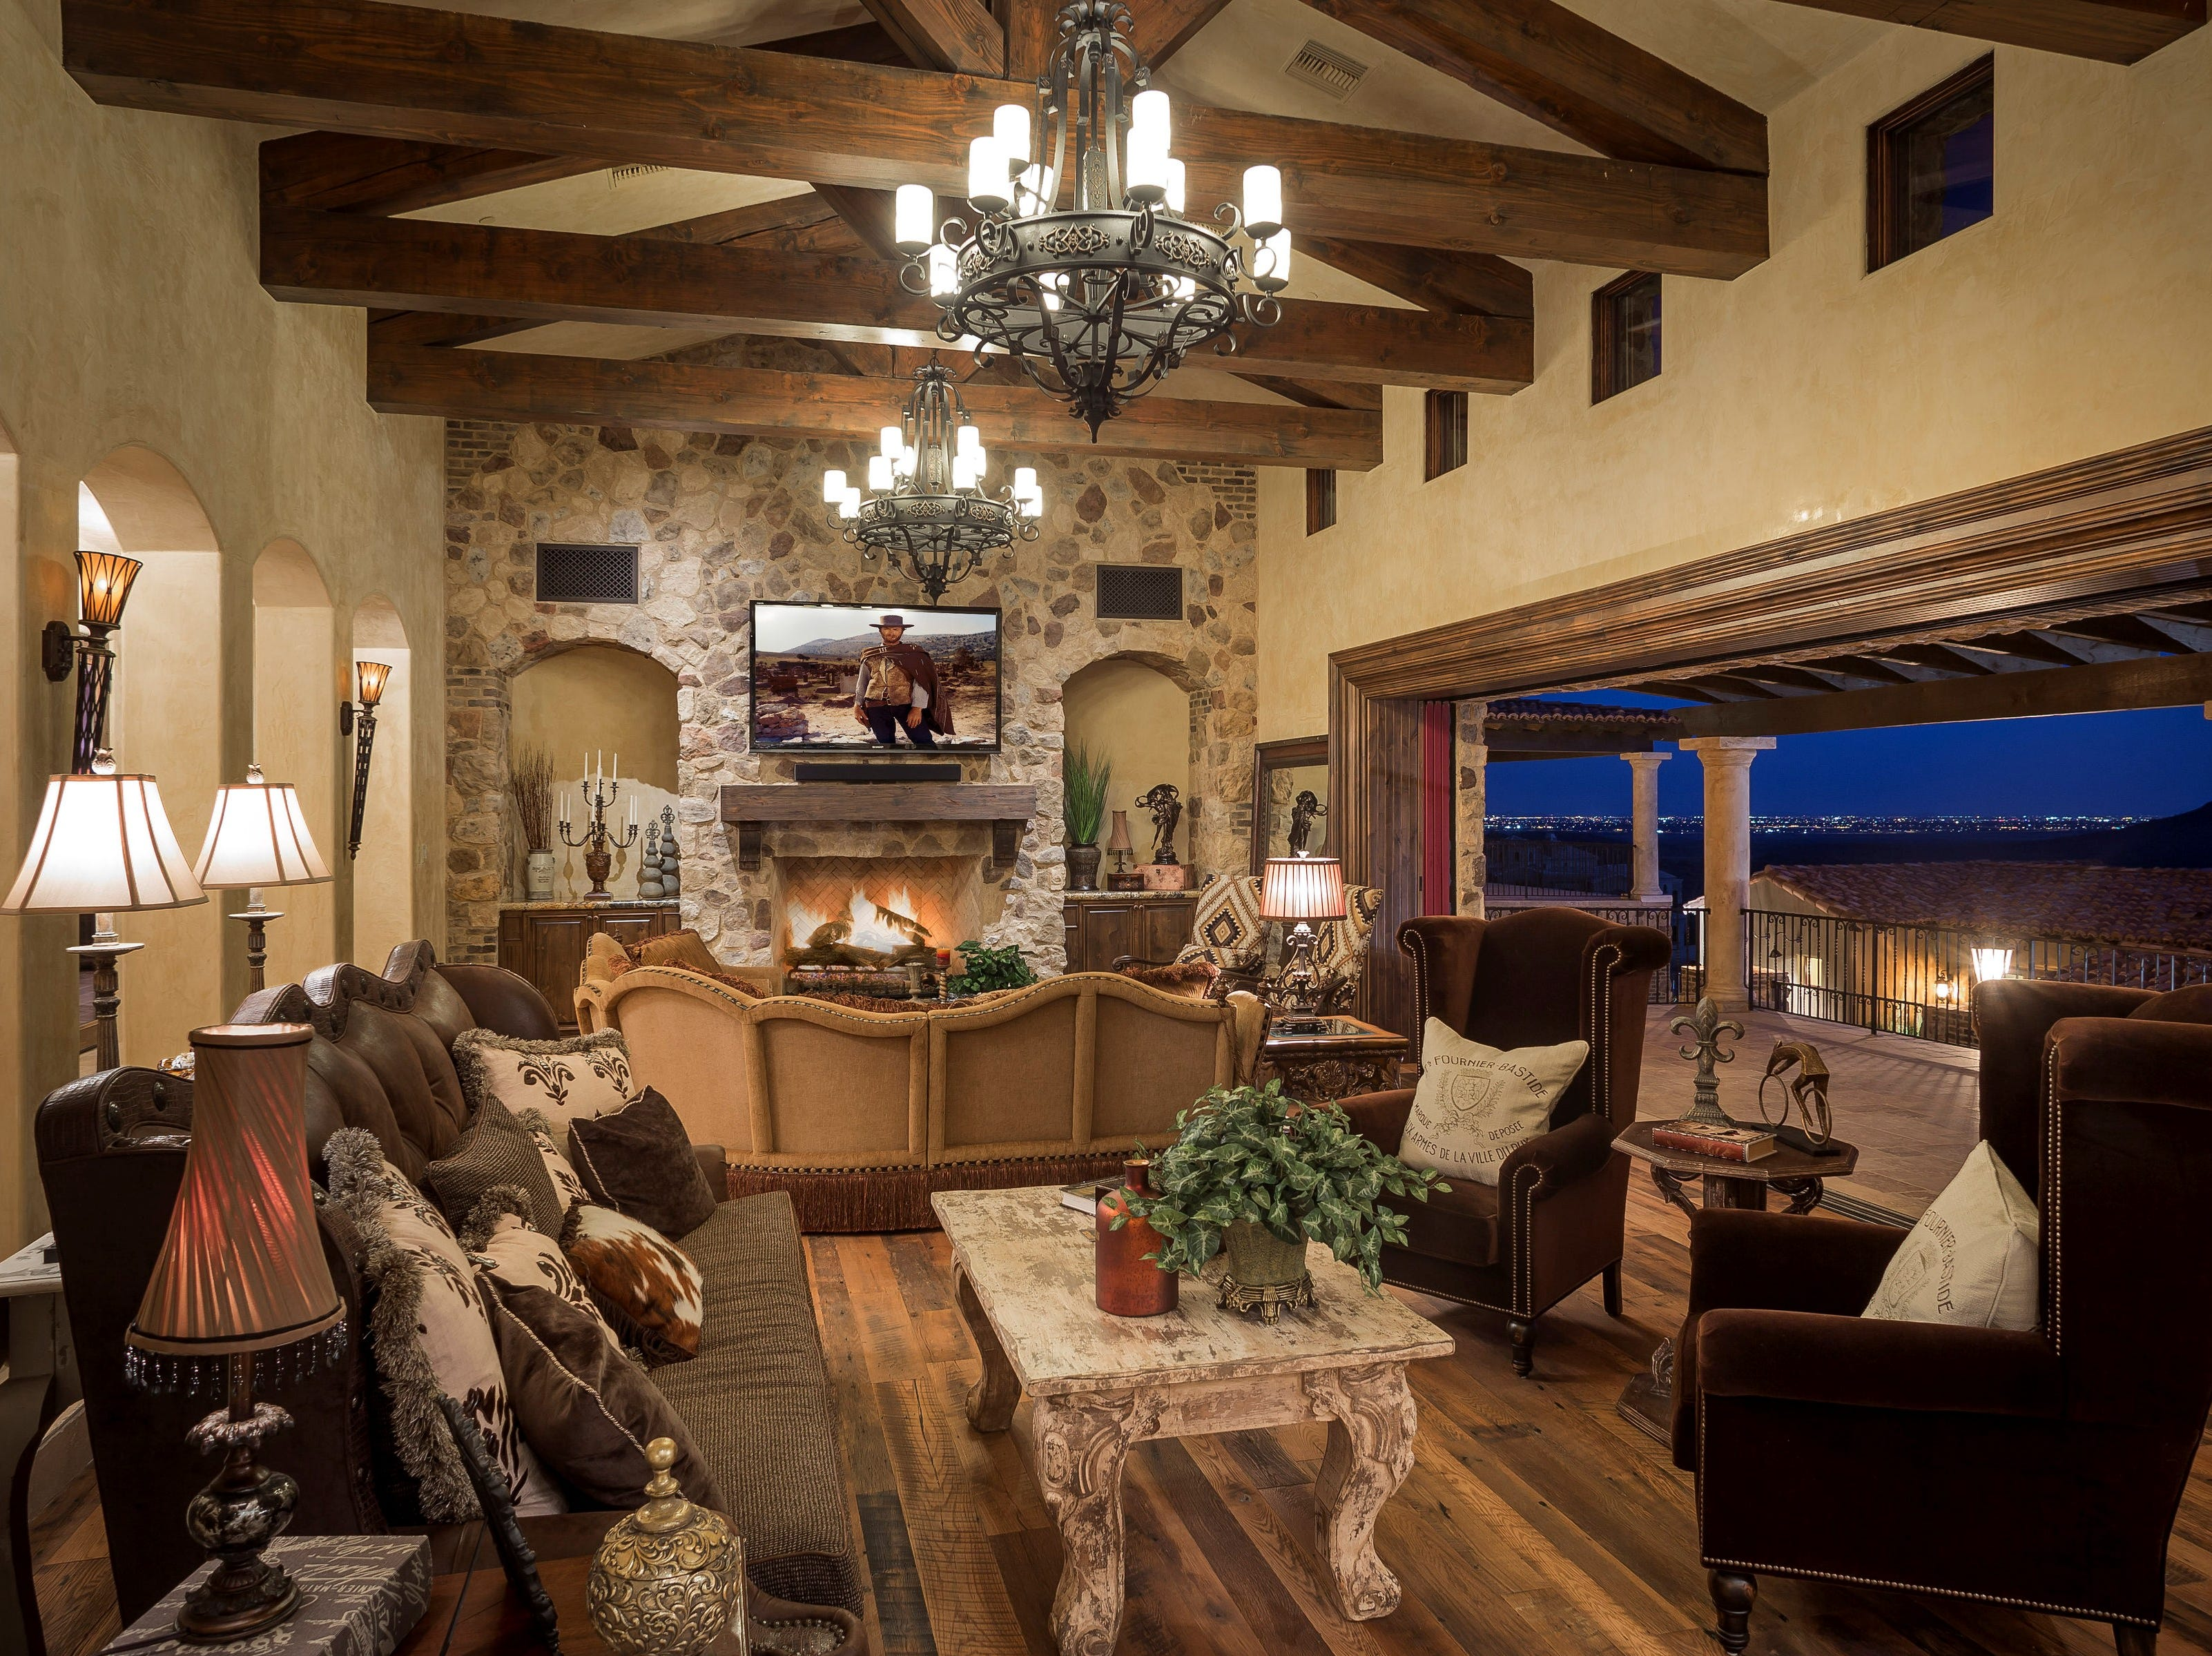 The $3.4M Fountain Hills mansion, sold by Craig and Debra Shaw, features exposed wooden beams and sliding glass walls.